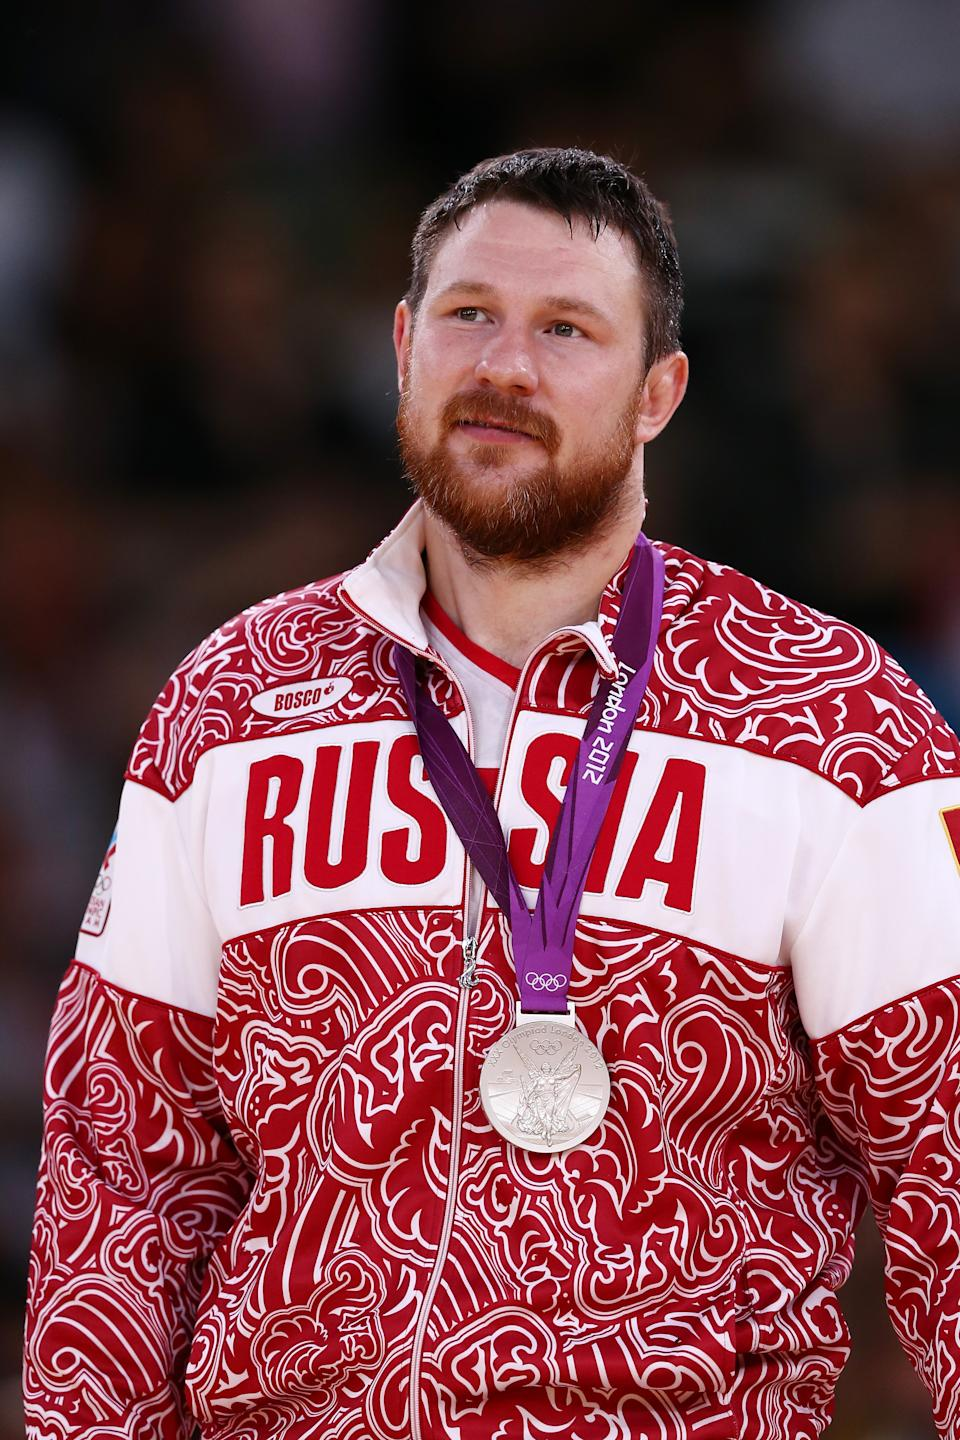 LONDON, ENGLAND - AUGUST 03: Silver medalist Alexander Mikhaylin of Russia in the Men's 100 kg Judo on Day 7 of the London 2012 Olympic Games at ExCeL on August 3, 2012 in London, England. (Photo by Quinn Rooney/Getty Images)